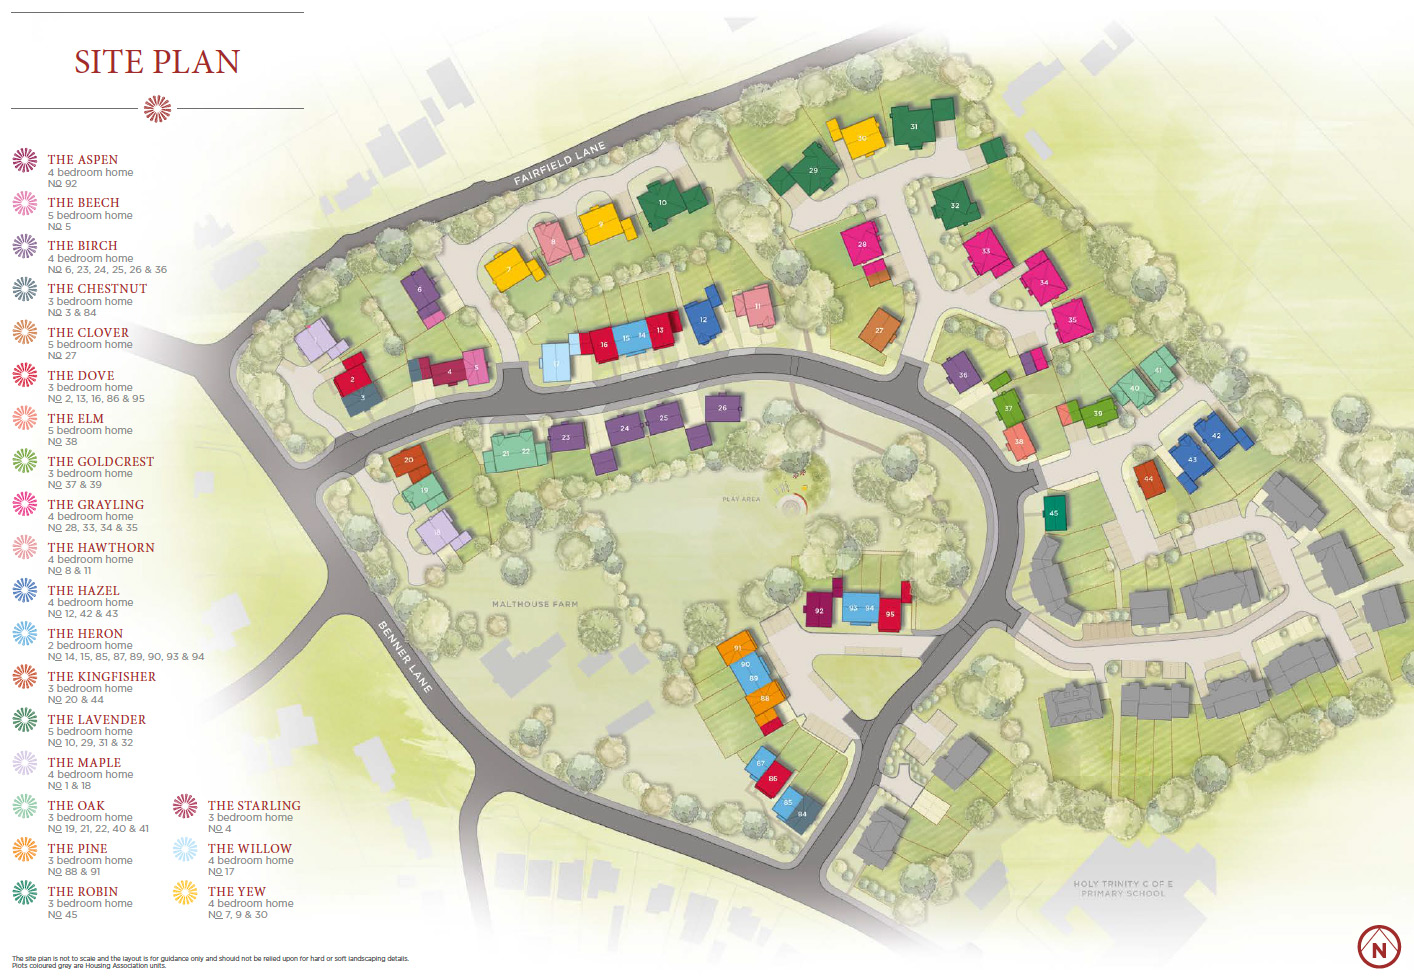 Plot 92 – The Aspen Siteplan